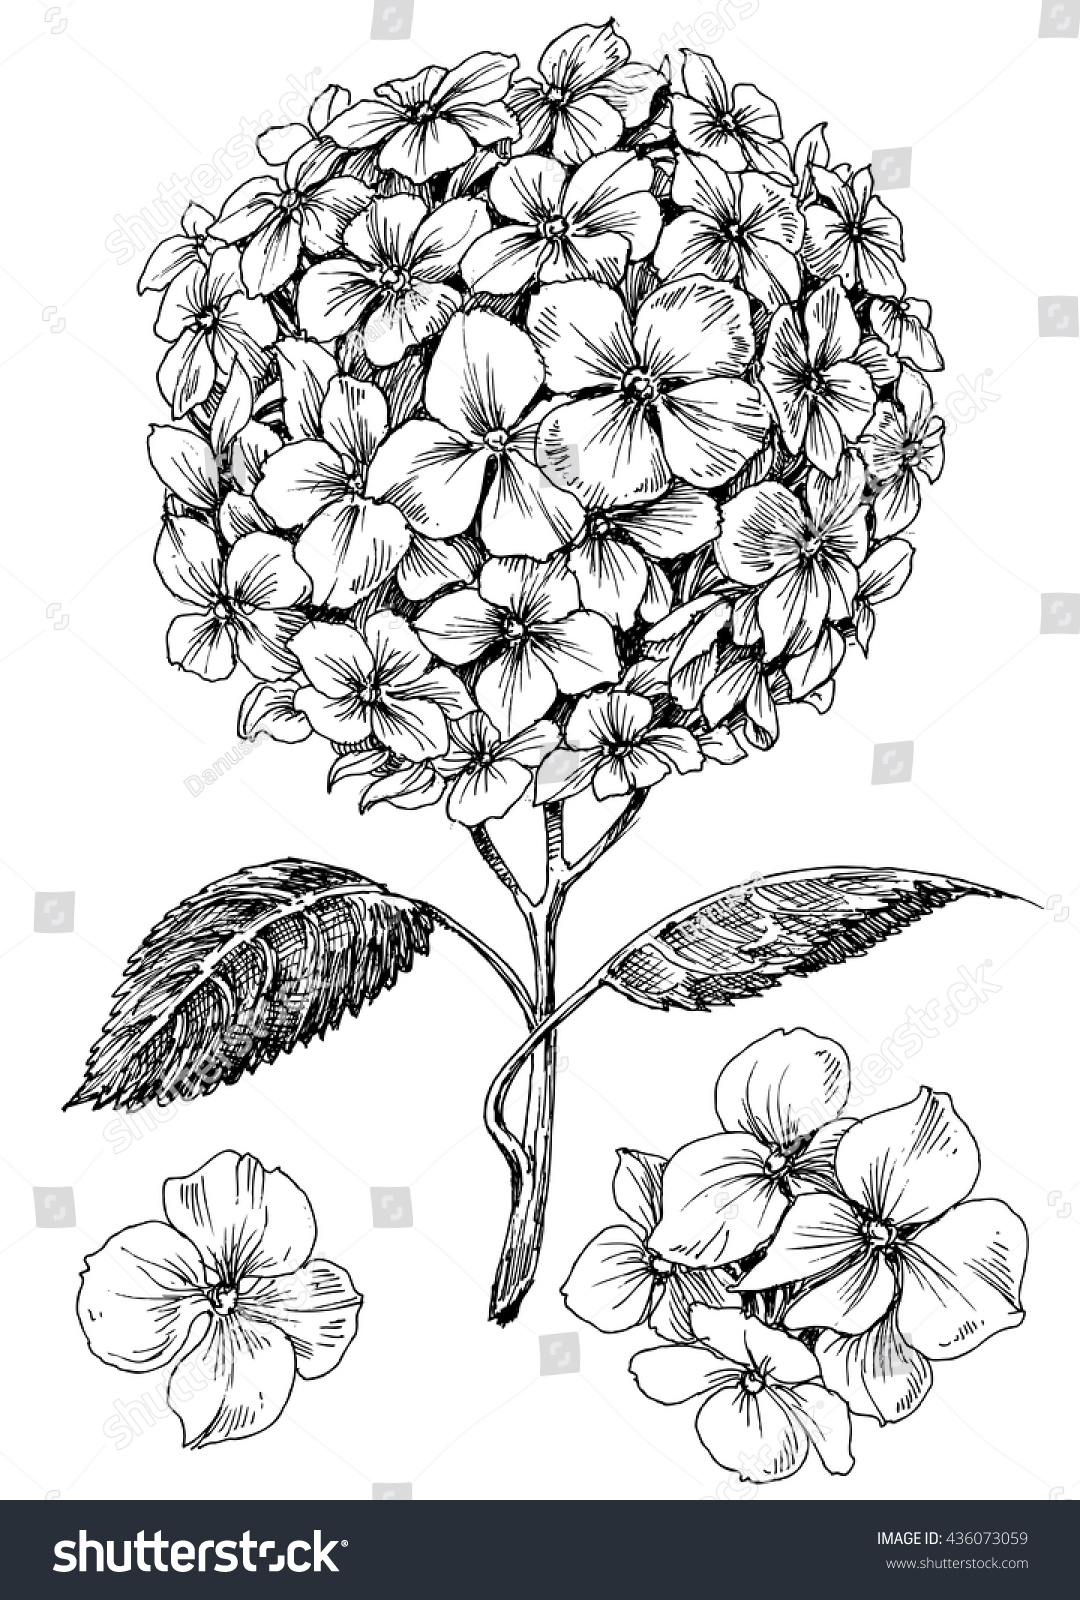 Hydrangea flower coloring pages - Hydrangea Flower Set Hand Drawn Detailed Hortensia